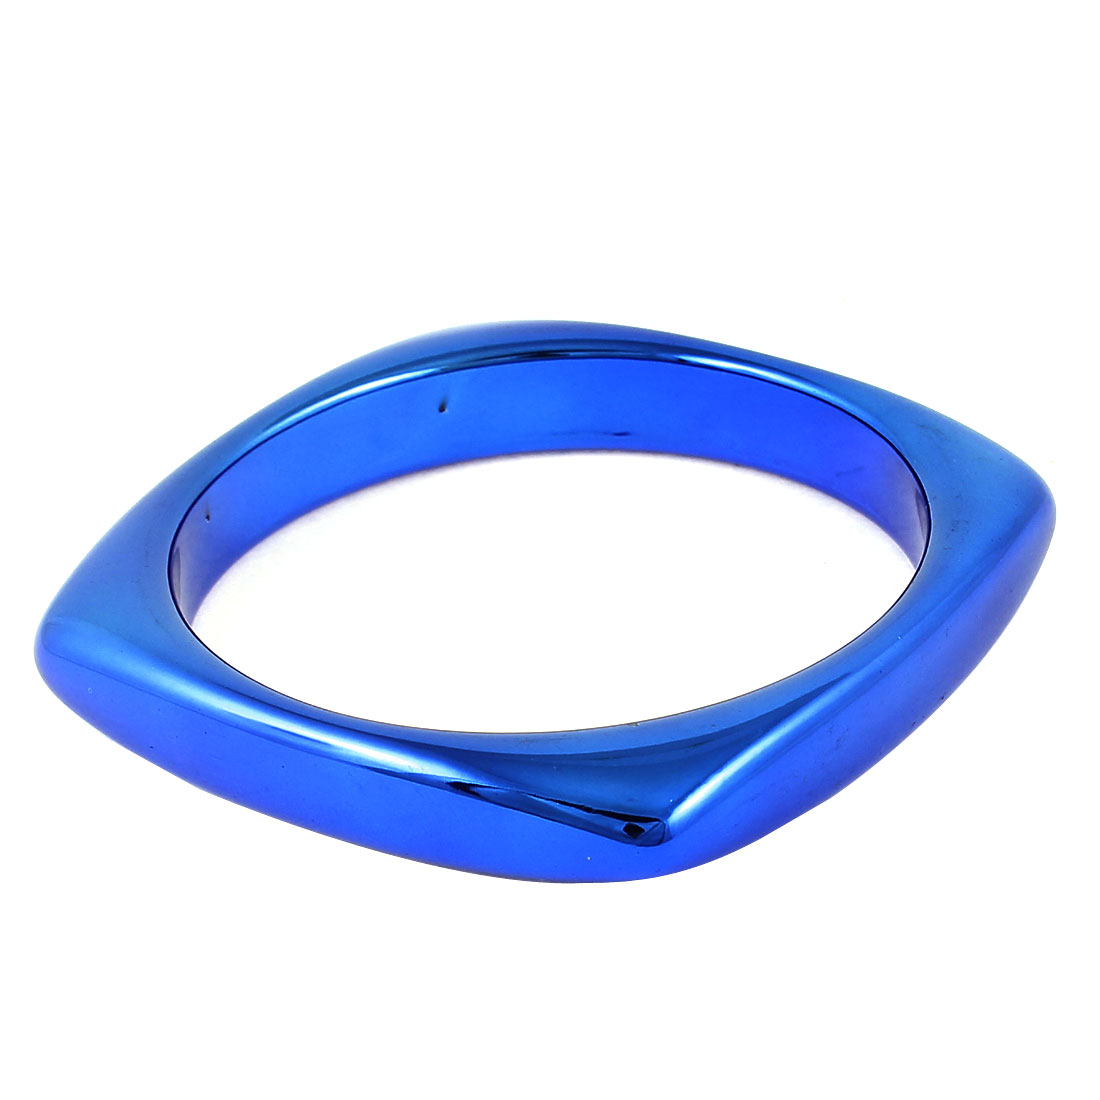 Woman Square Design Blue Plastic Bracelet Wrist Adorning